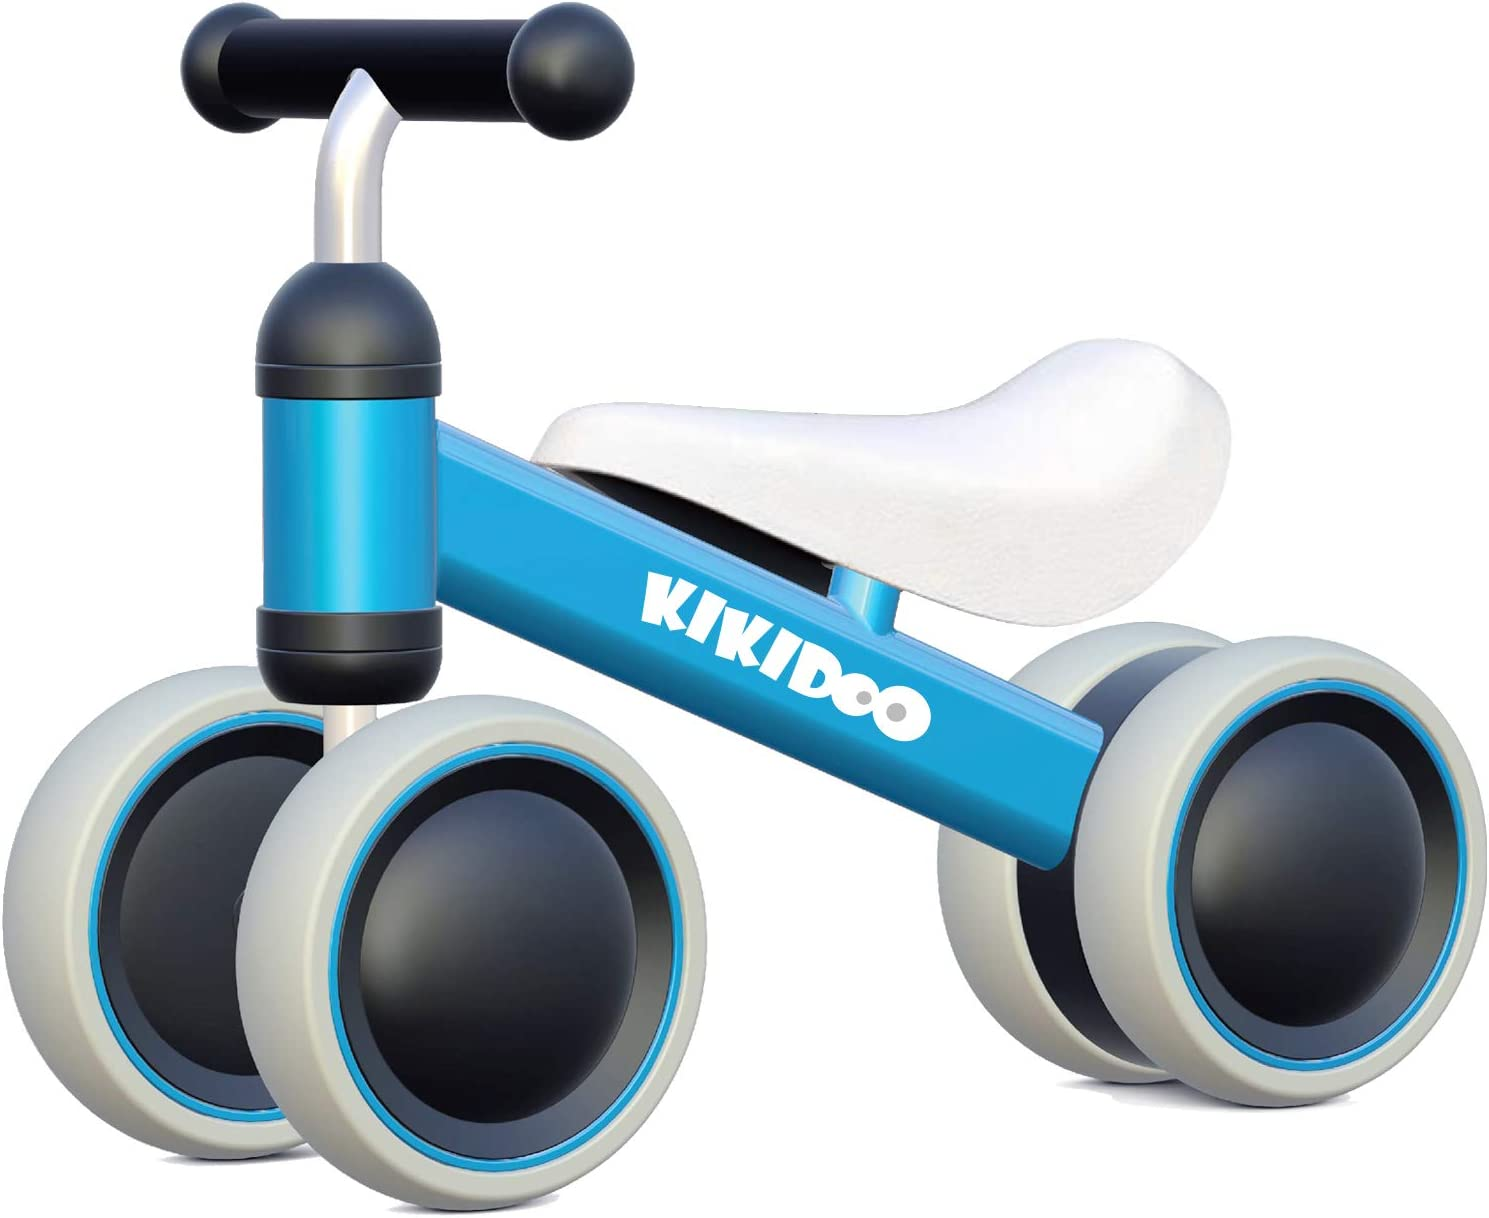 Baby Balance Bike - Baby Bicycle for 6-24 Months, Sturdy Balance Bike for 1 Year Old Girl Boy Gift, Perfect as First Bike or Birthday Gift, Safe Riding Toy